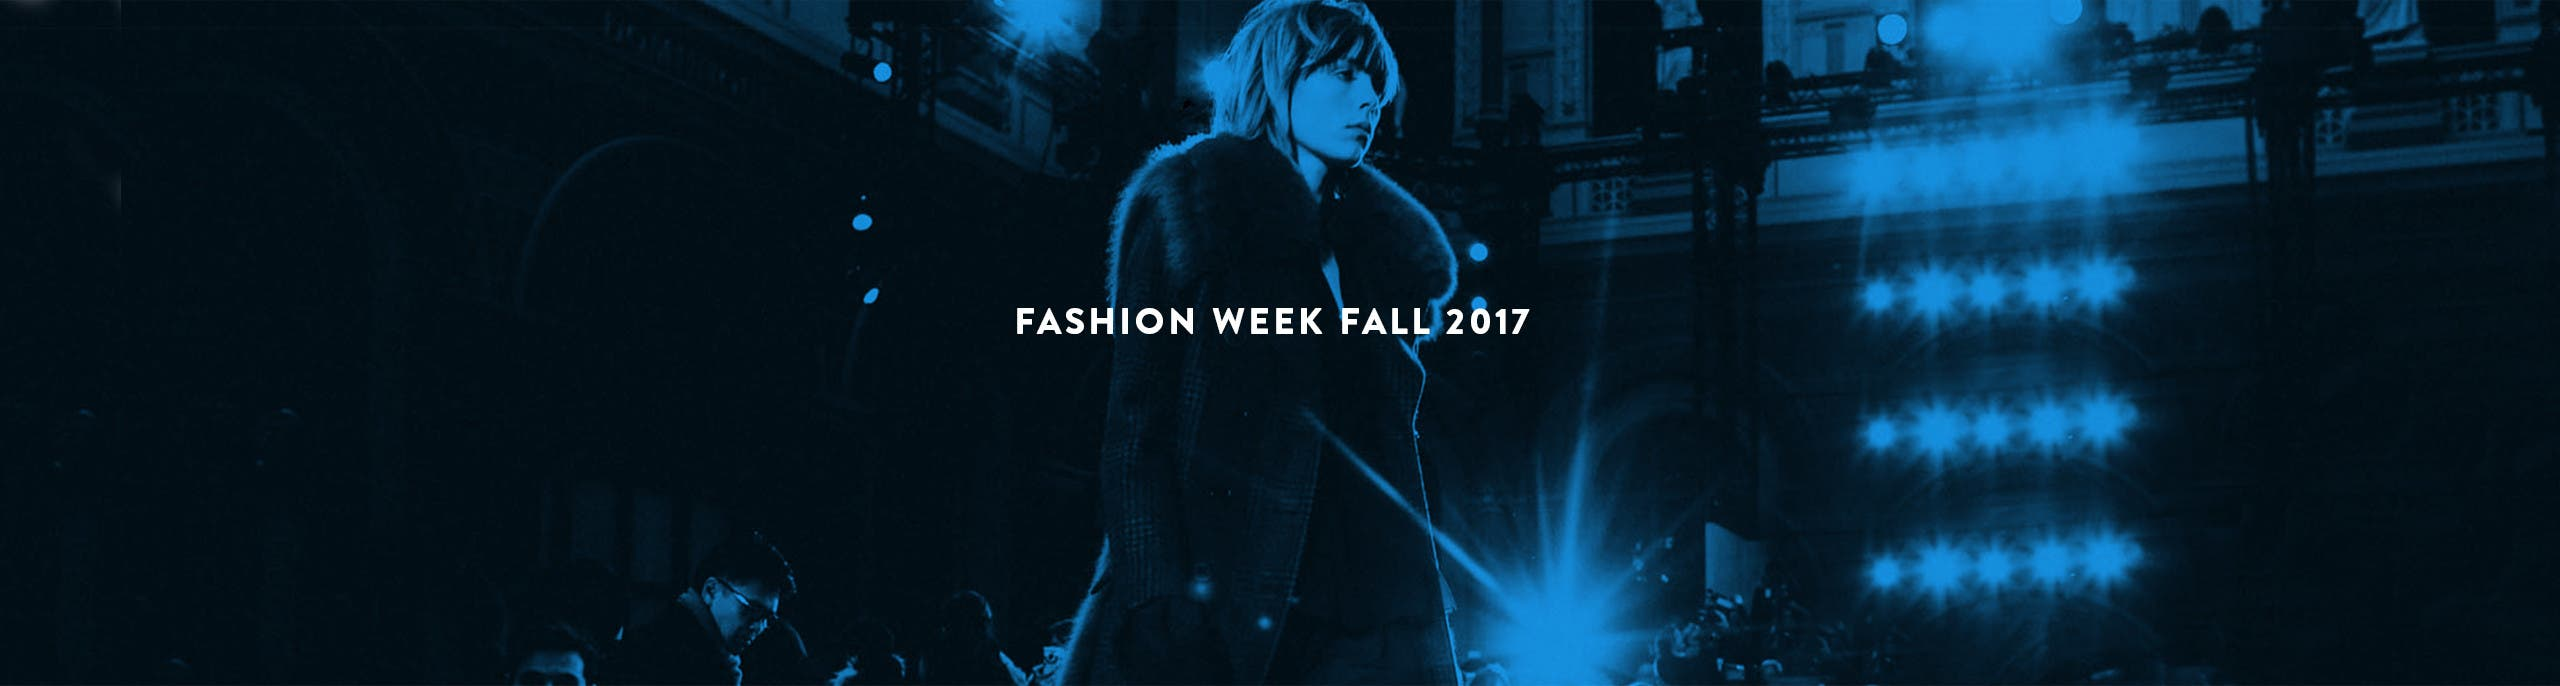 Welcome to Fall 2017 Fashion Week.